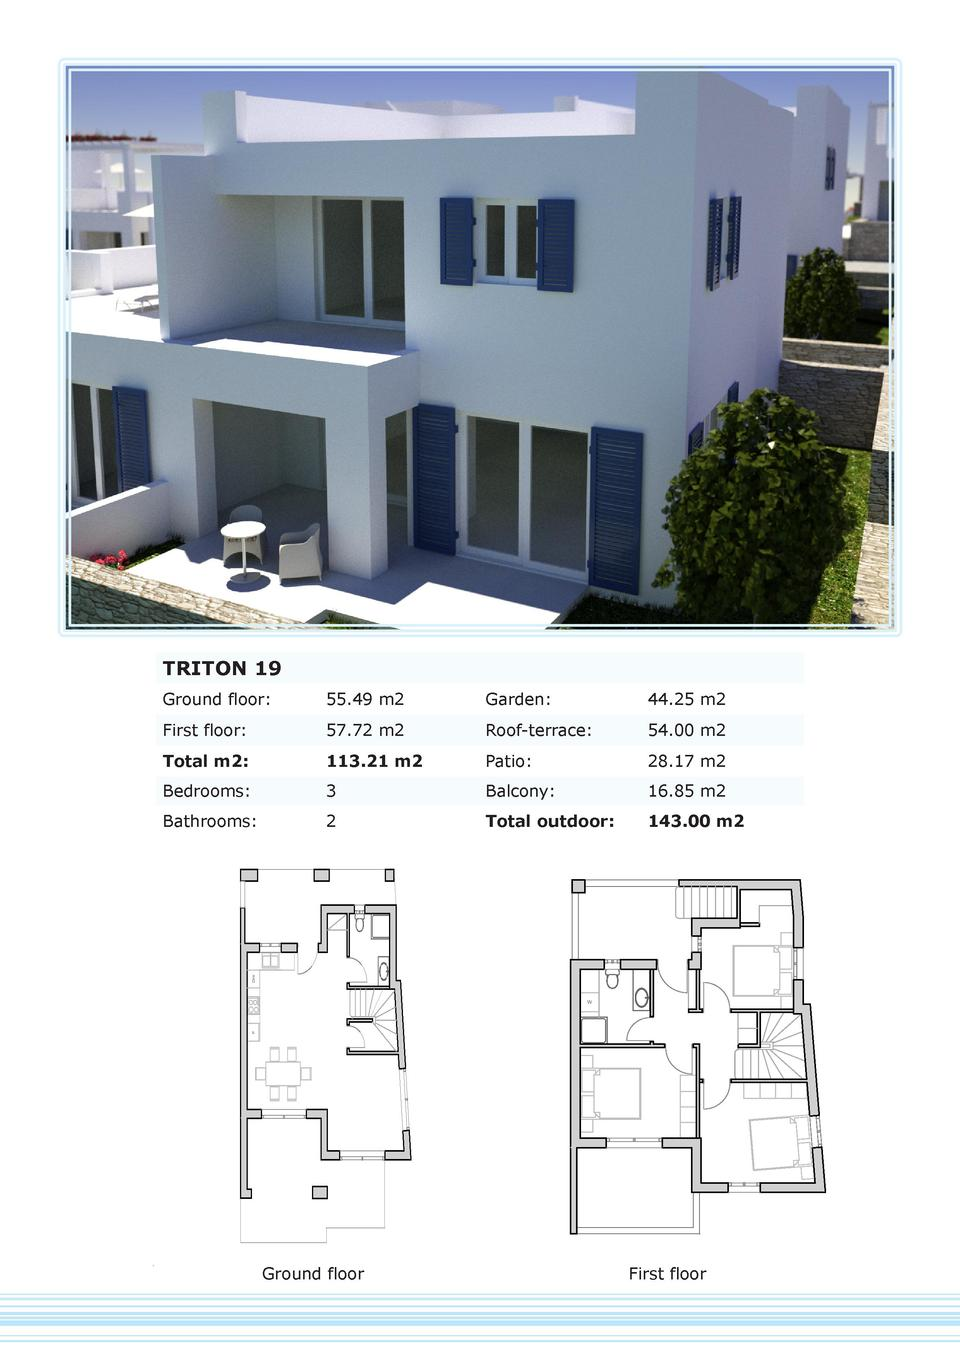 TRITON 19 Ground floor   55.49 m2  Garden   44.25 m2  First floor   57.72 m2  Roof-terrace   54.00 m2  Total m2   113.21 m...